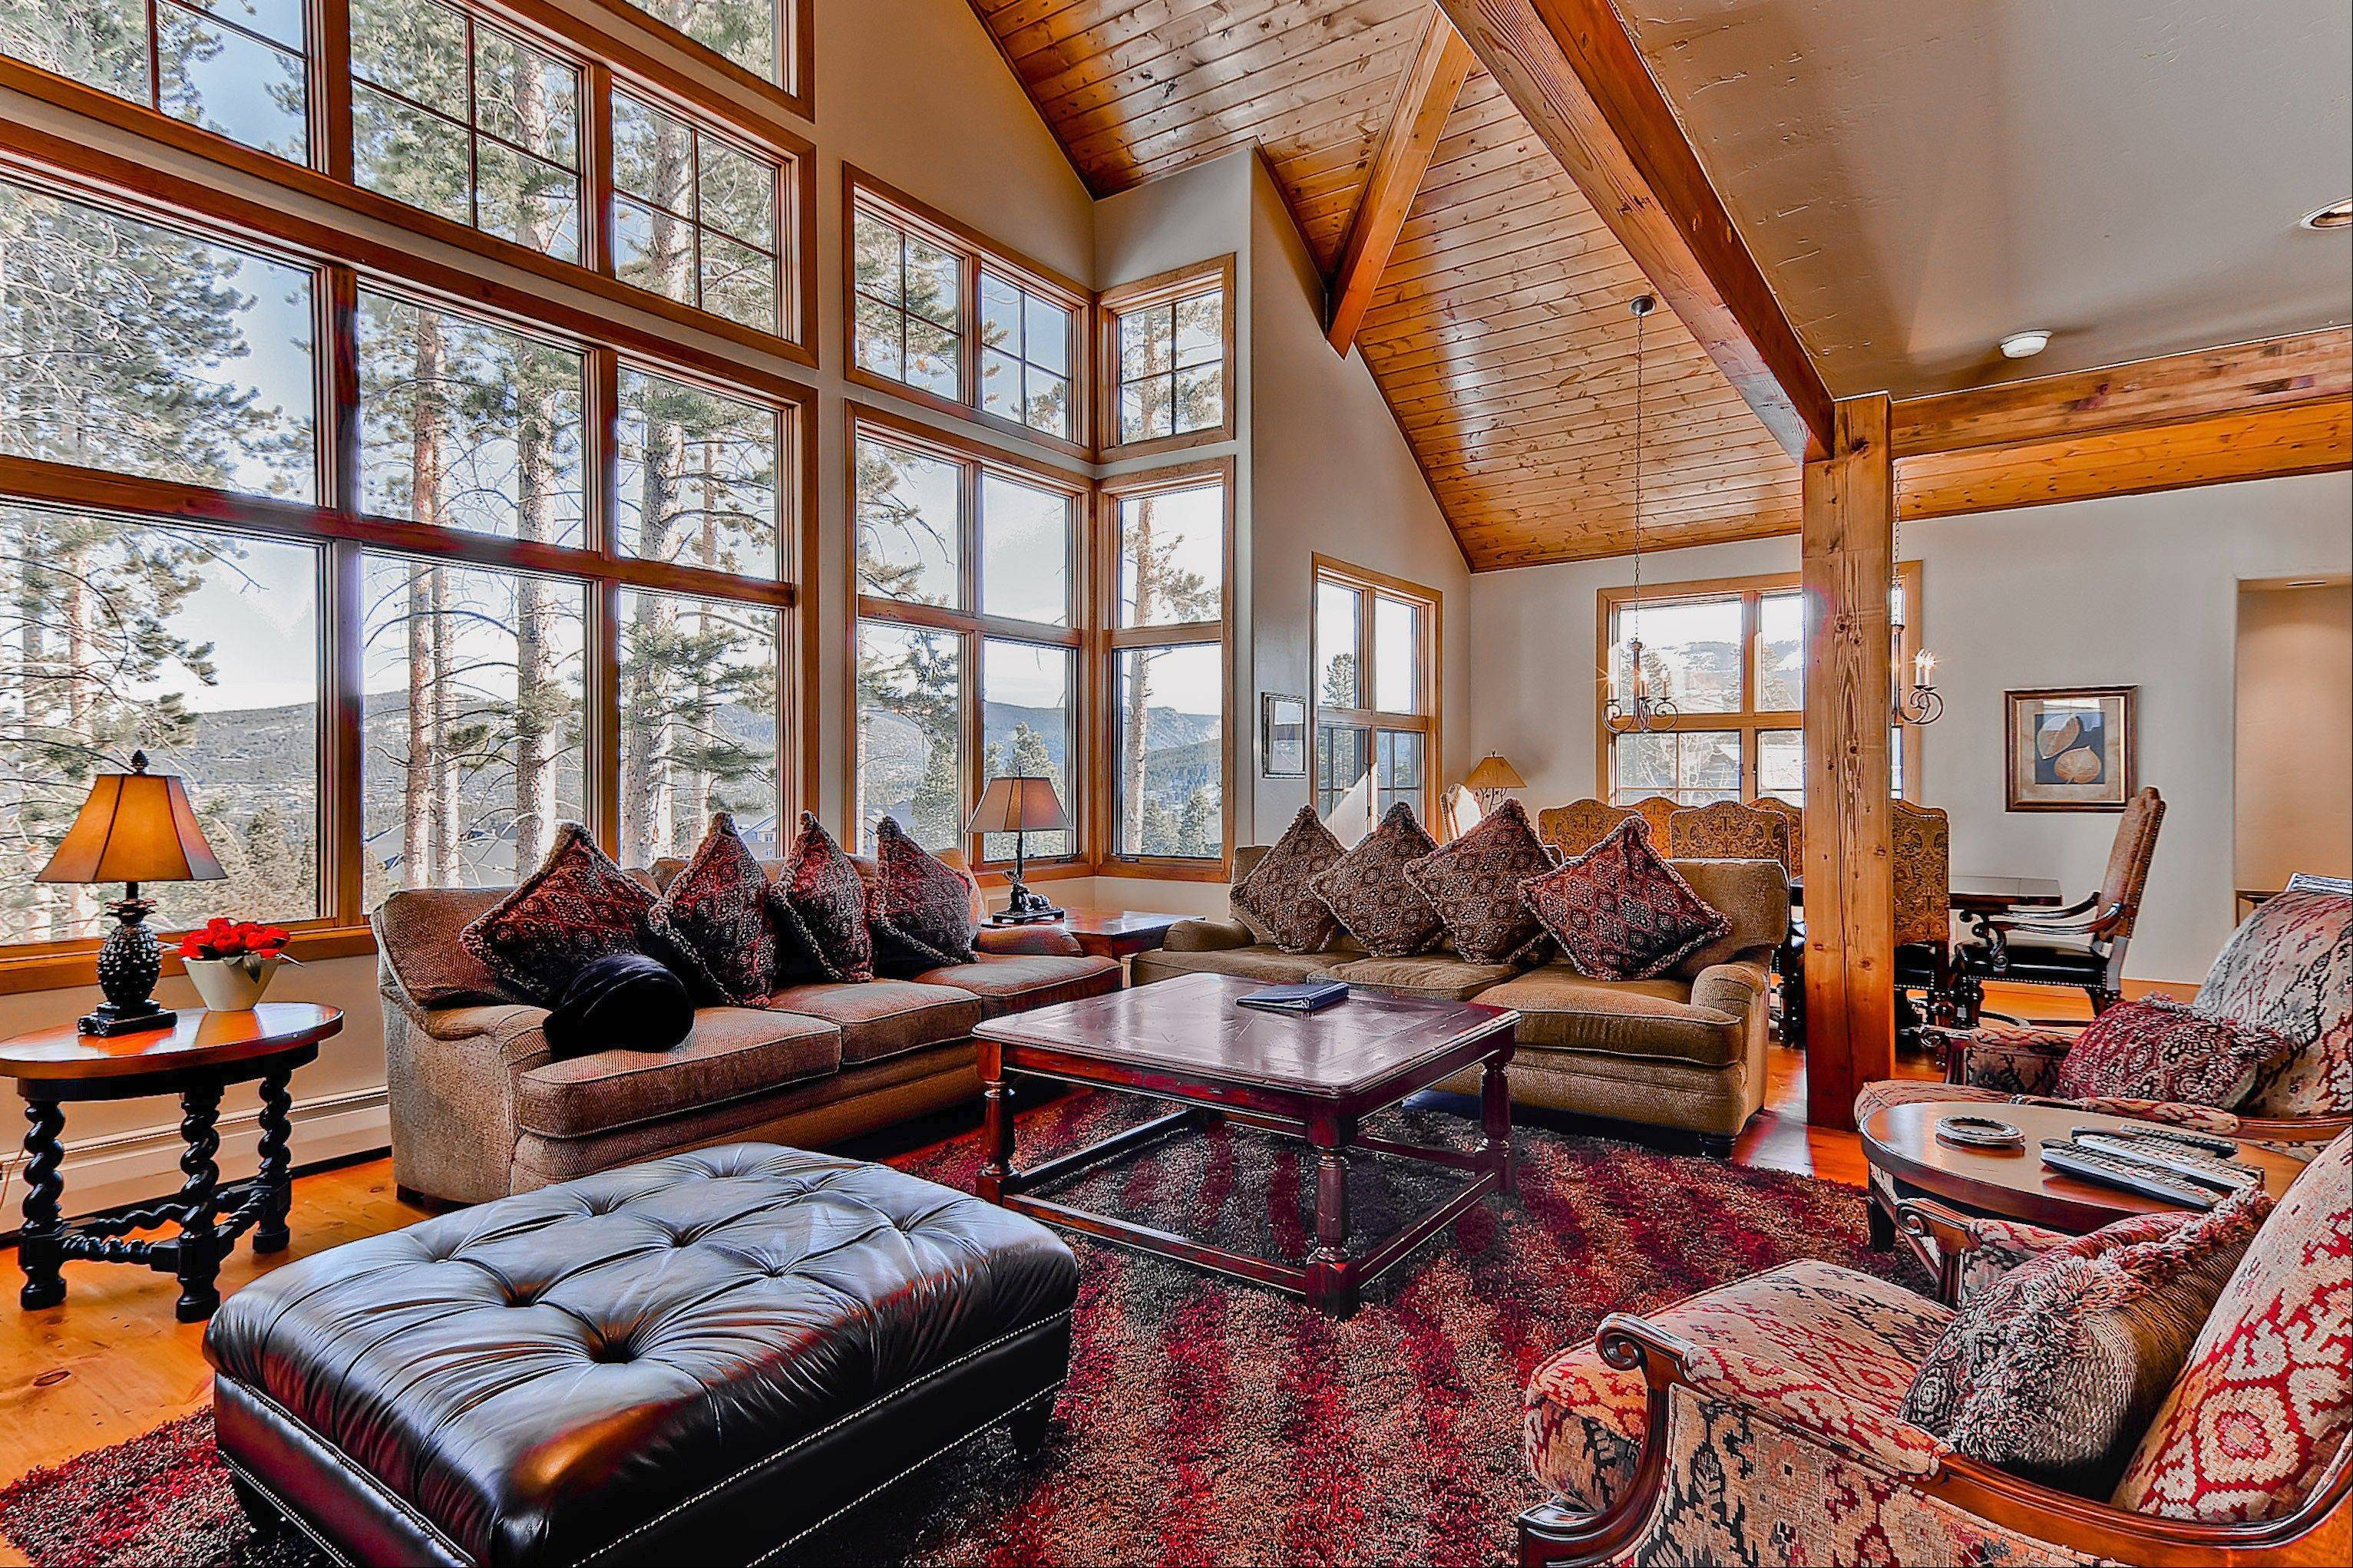 The Breckenridge Westridge Lodge in Colorado has six bedrooms and can sleep 20 people.